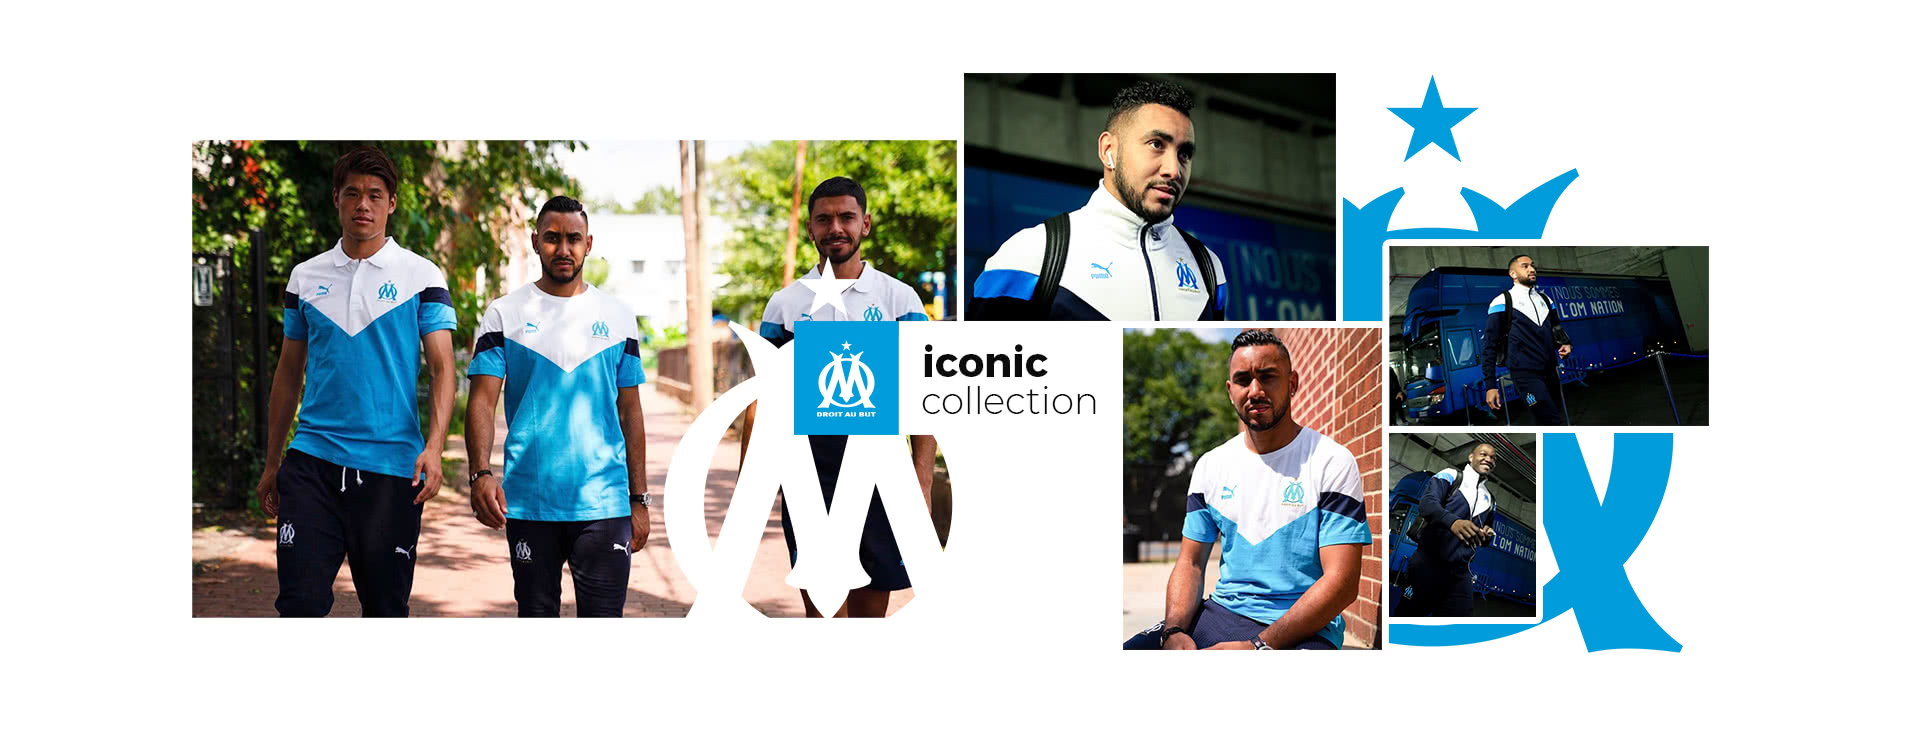 Iconic collection OM